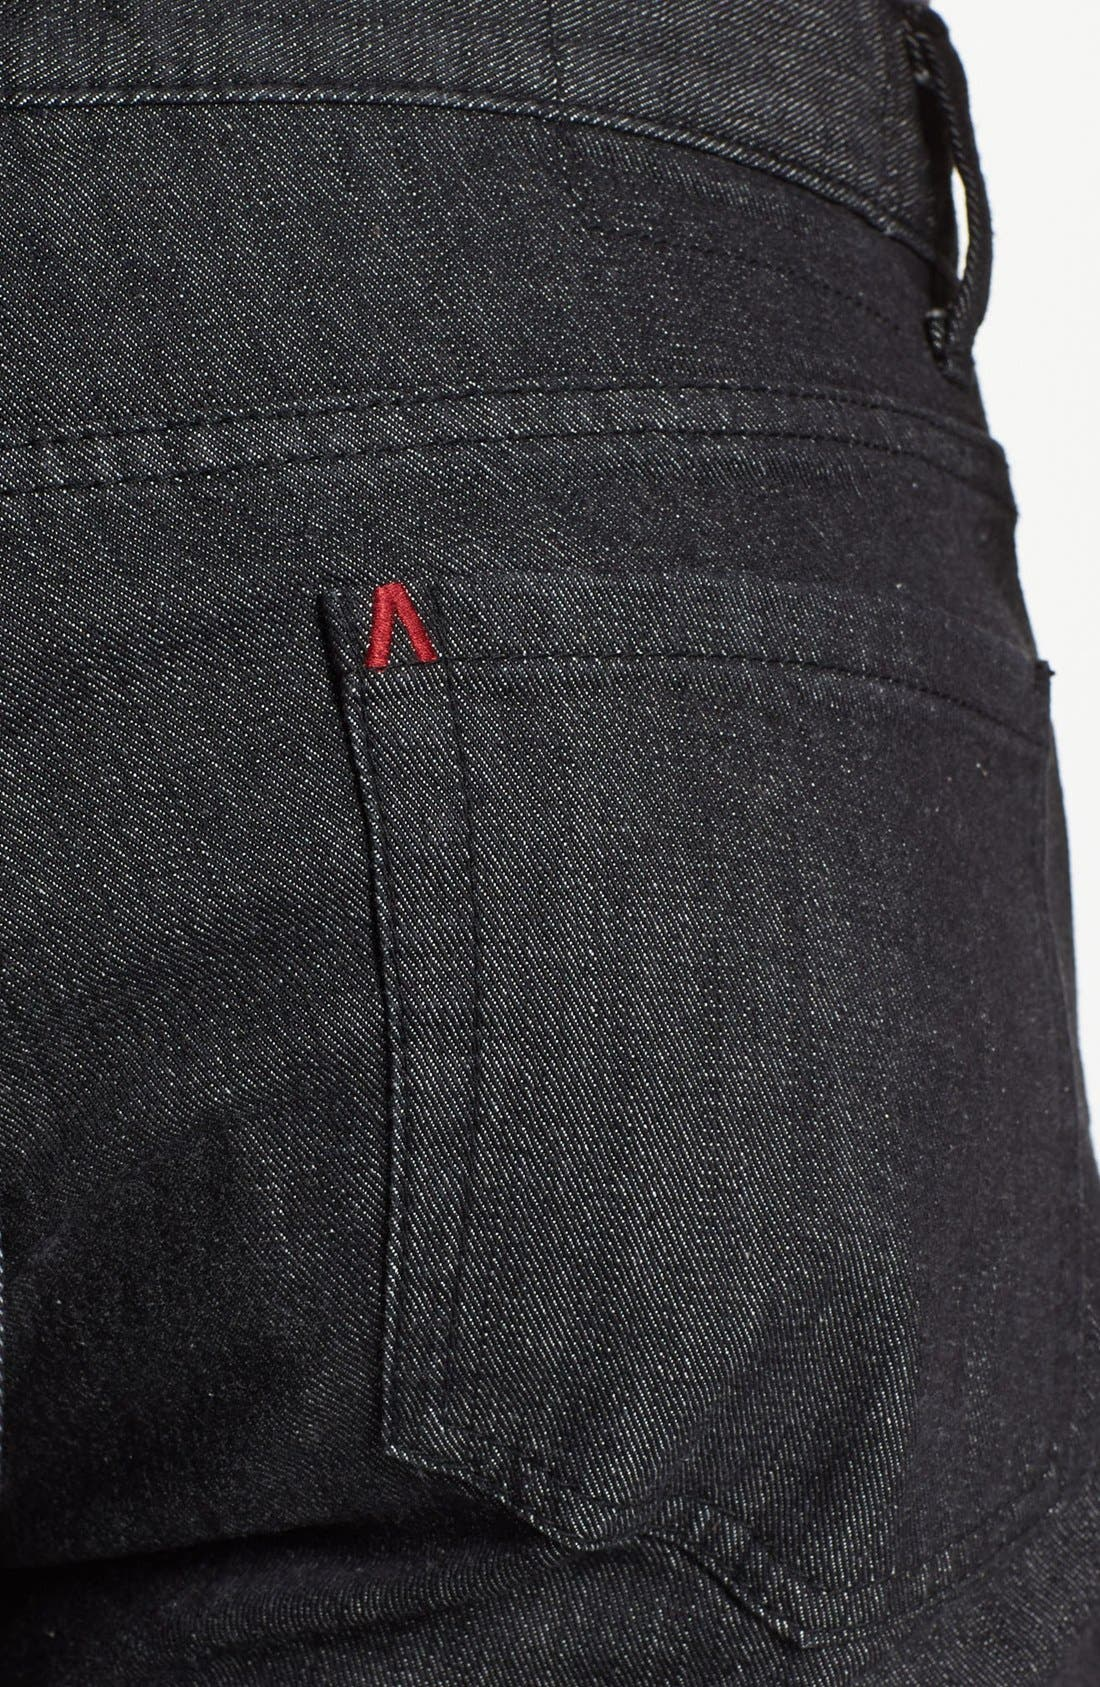 Alternate Image 4  - RVCA Slim Straight Leg Jeans (Black)